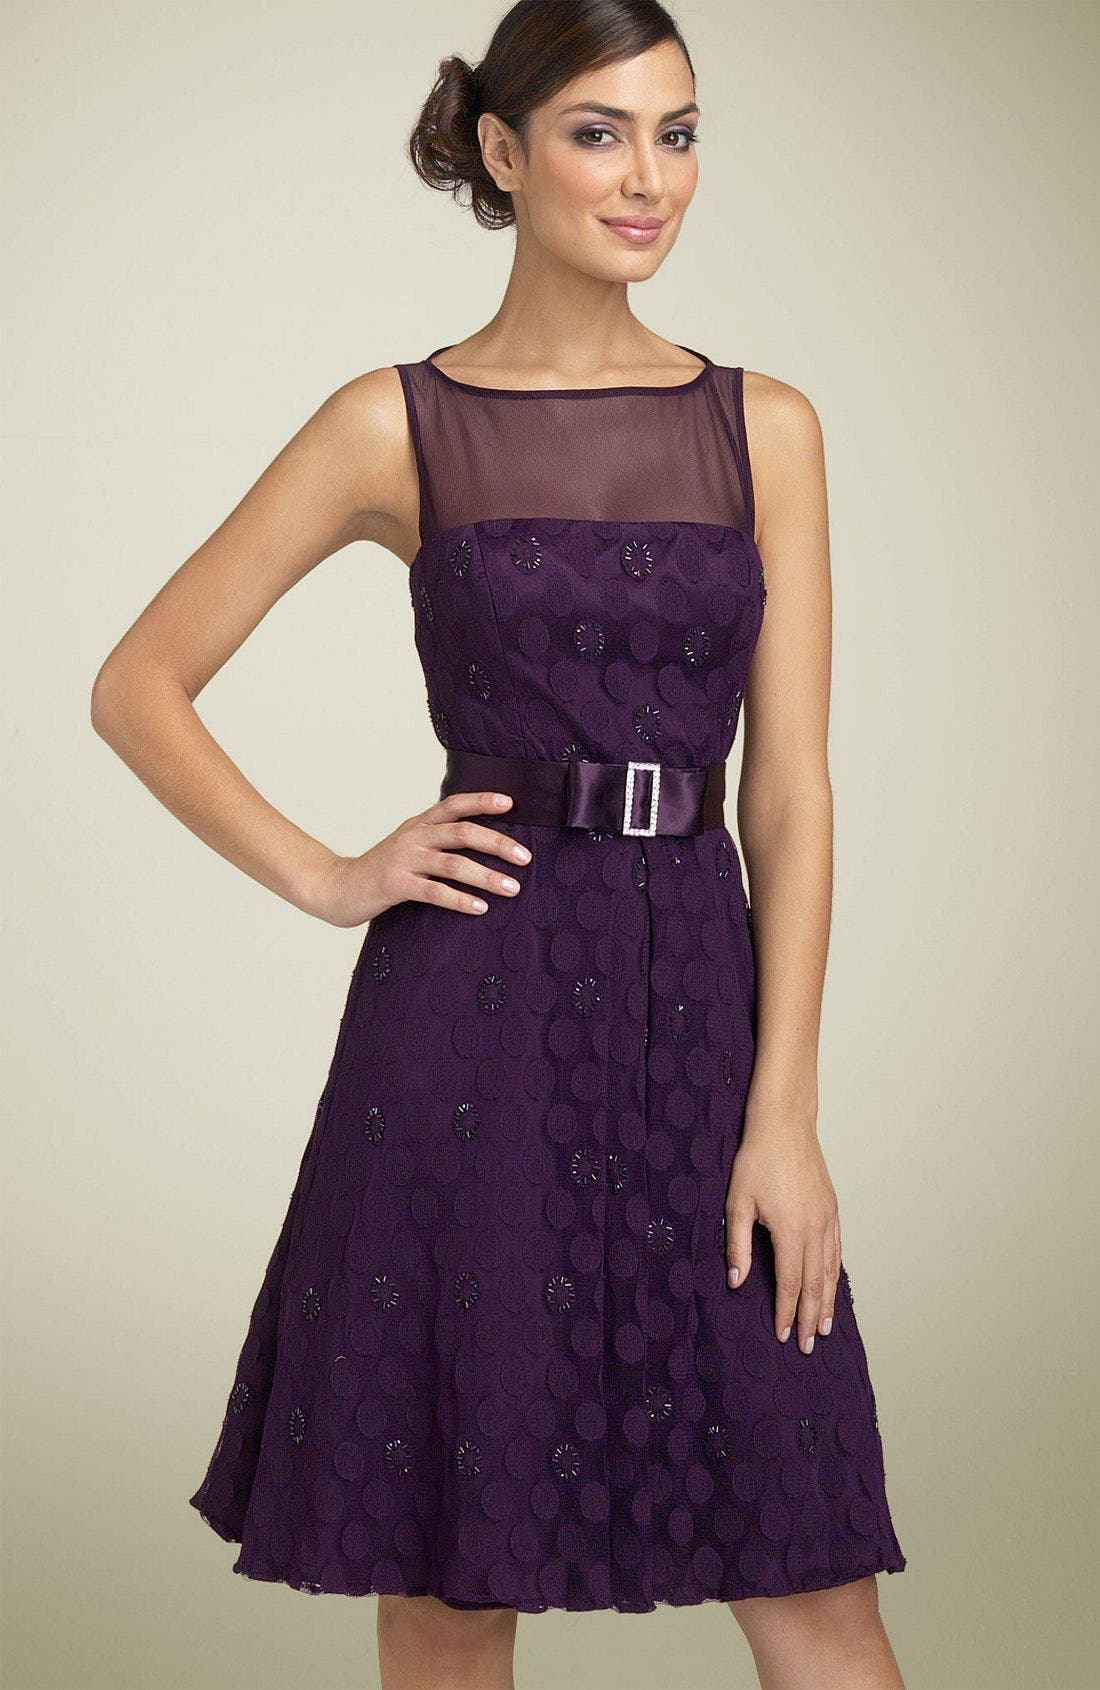 Main Image - JS Boutique Mesh Dot Party Dress with Sash